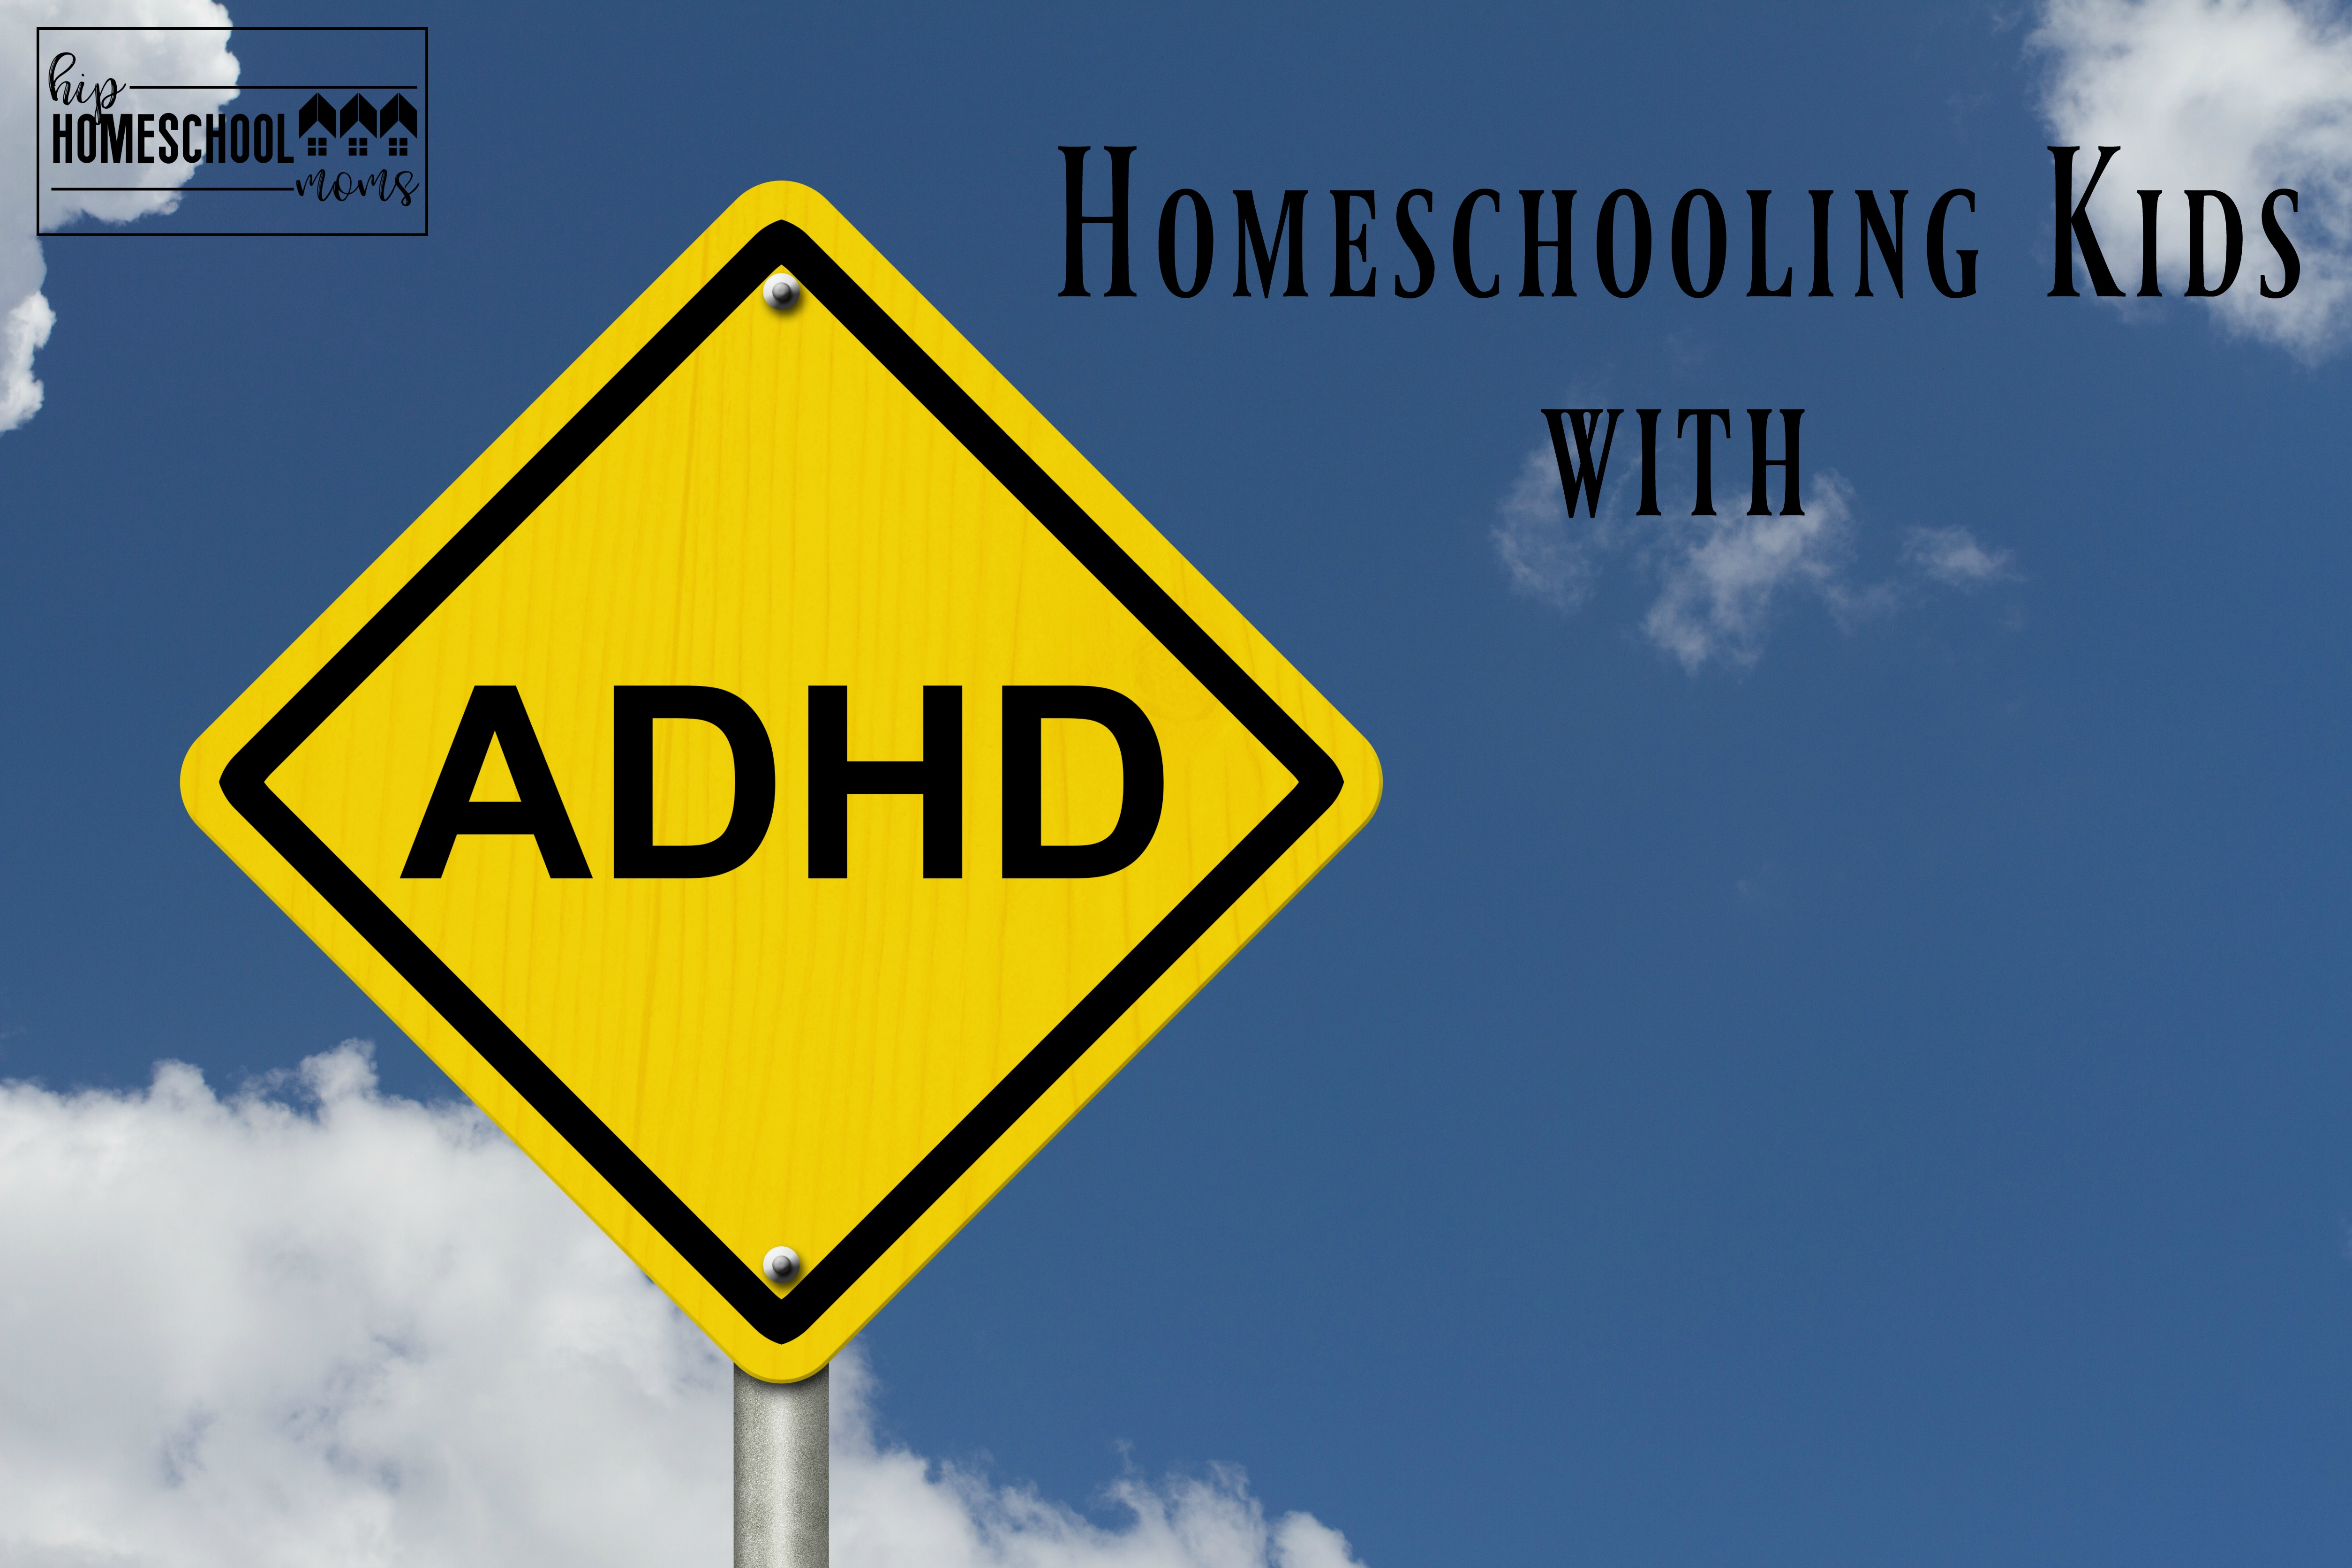 Information for parents who are considering homeschooling their children who have ADHD.